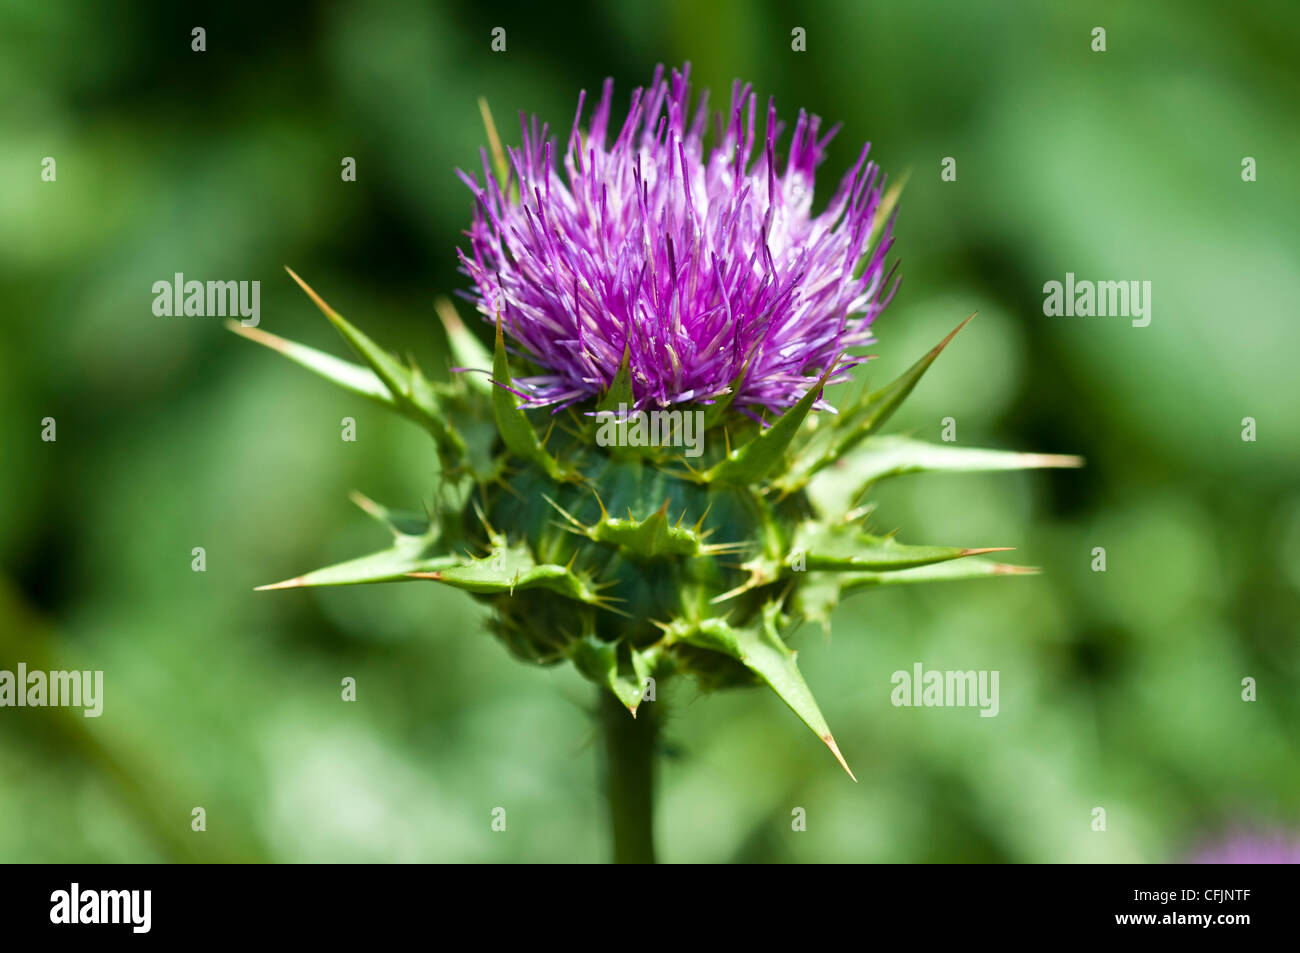 Milk Thistle Silybum marianum, Asteraceae, medicinal plant contain sylimarin for  cure of liver damage - Stock Image